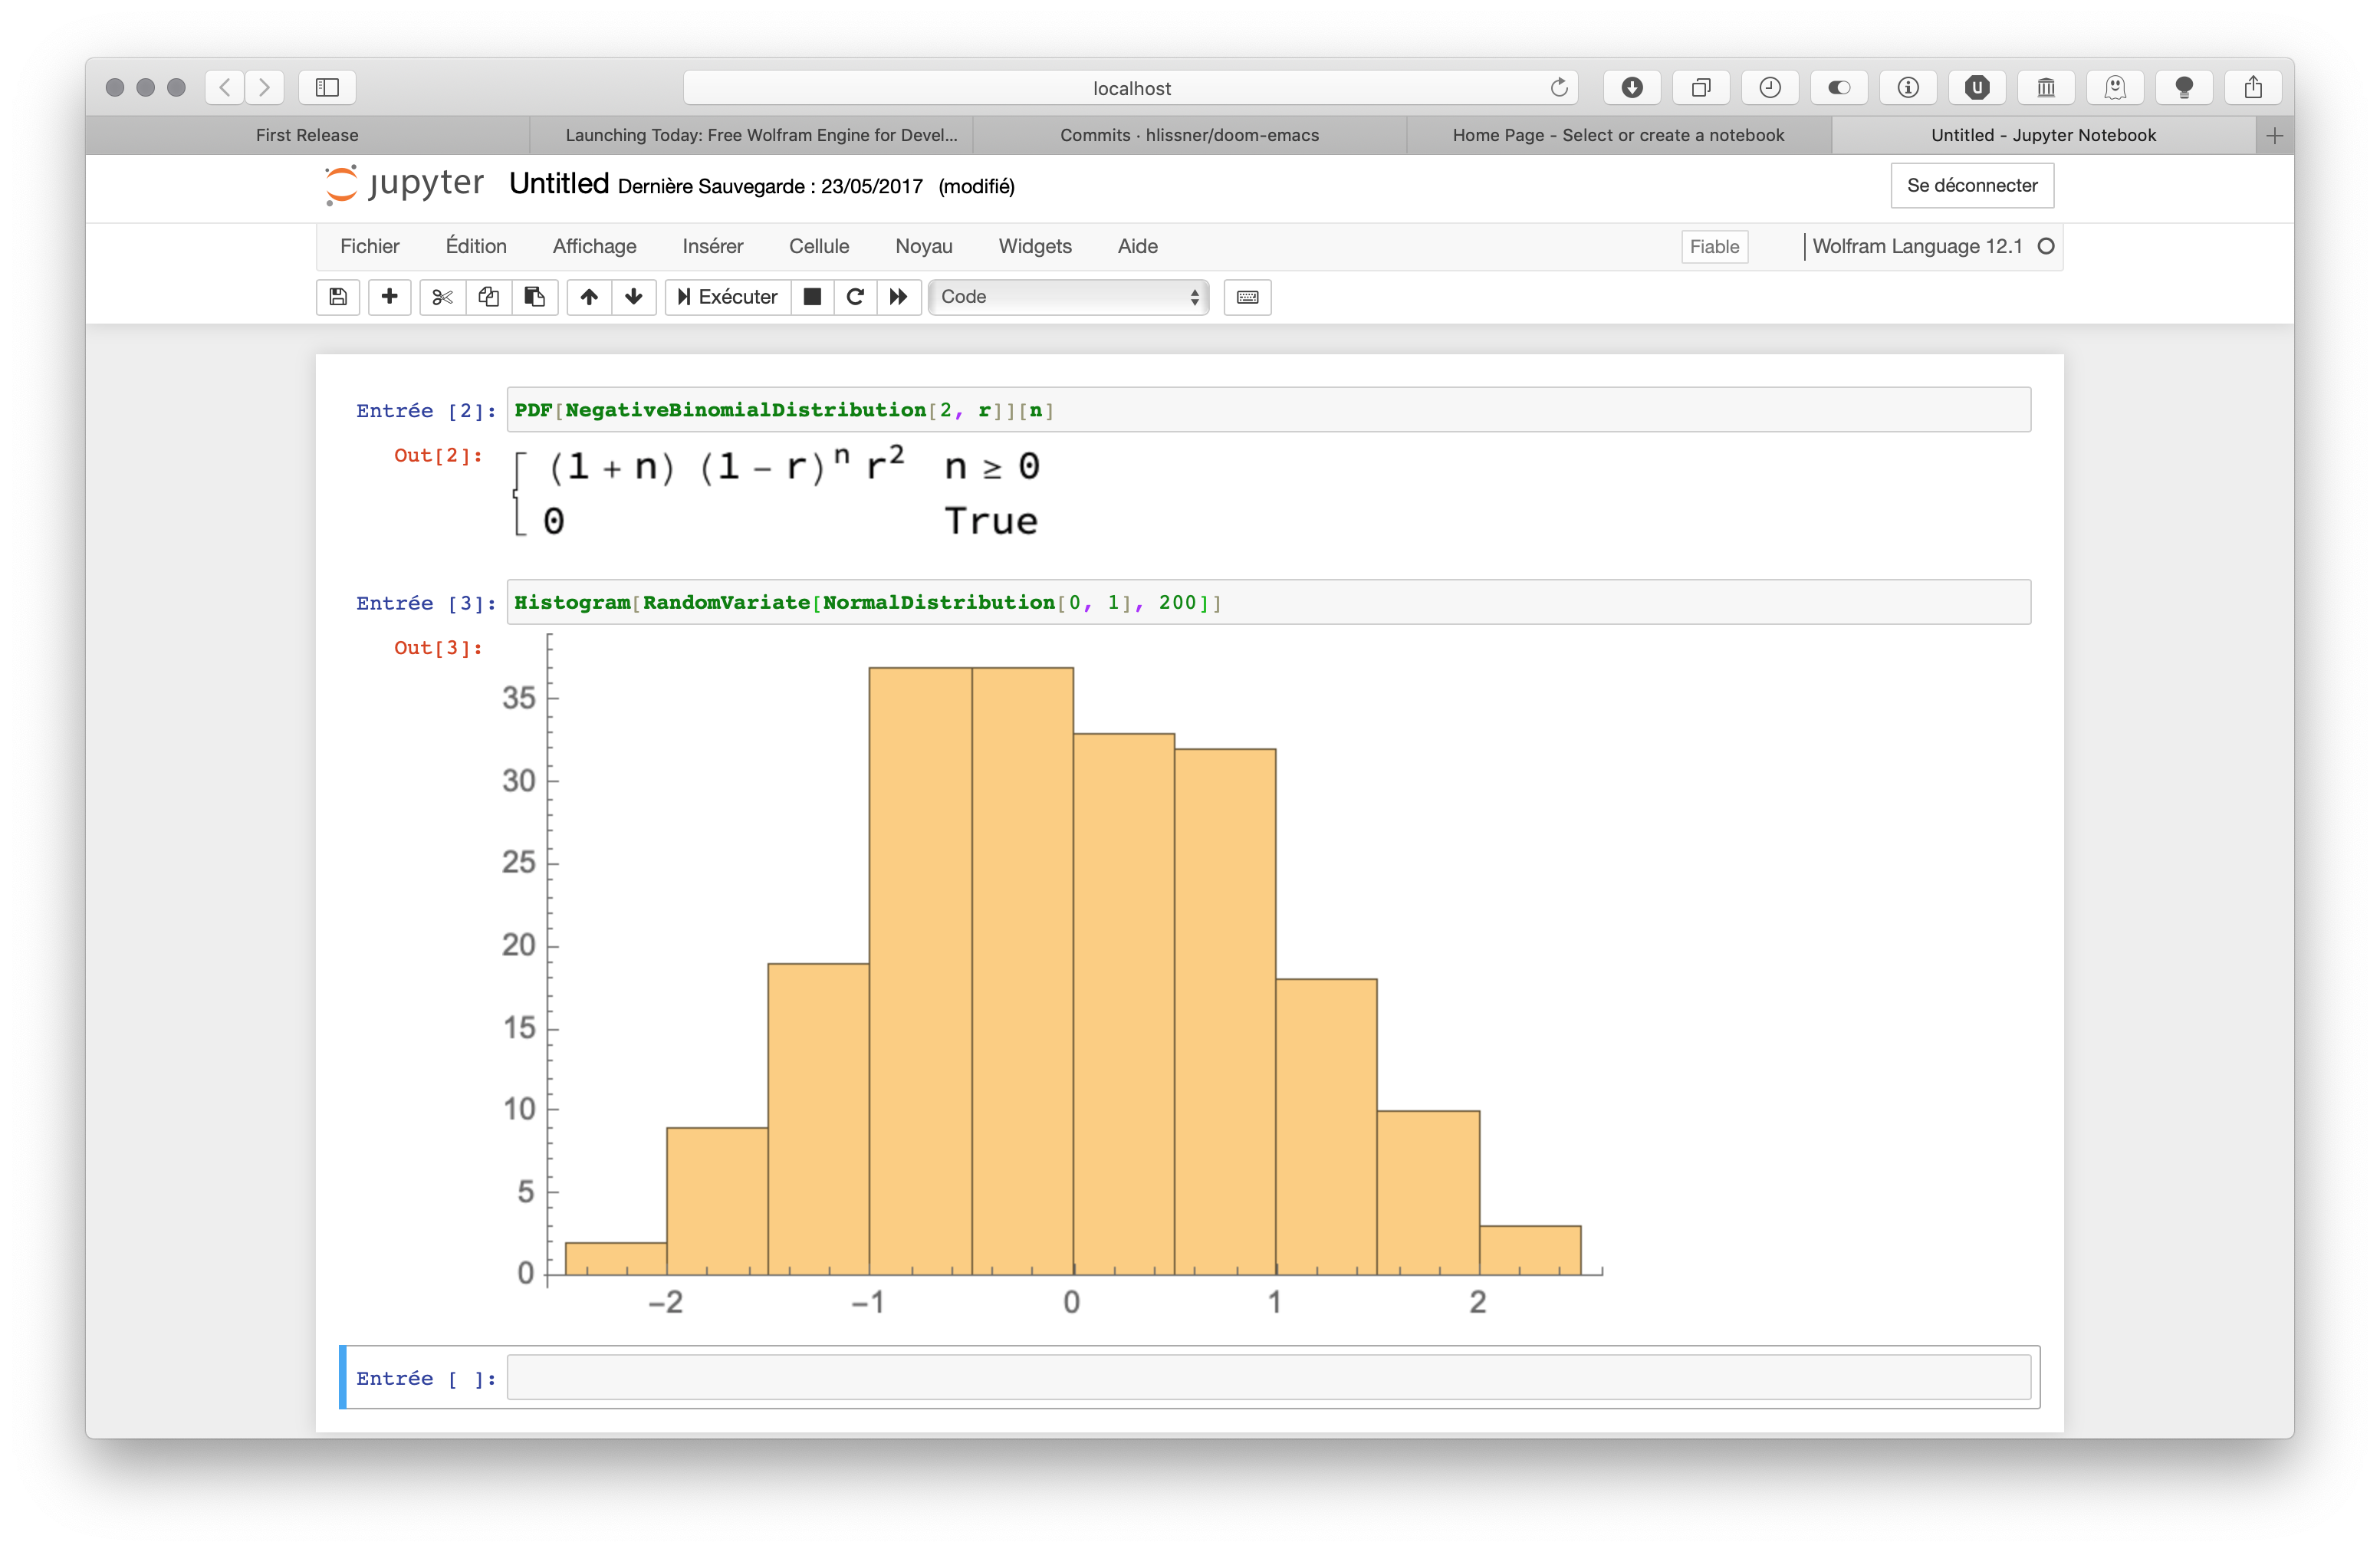 jupyter-notebook